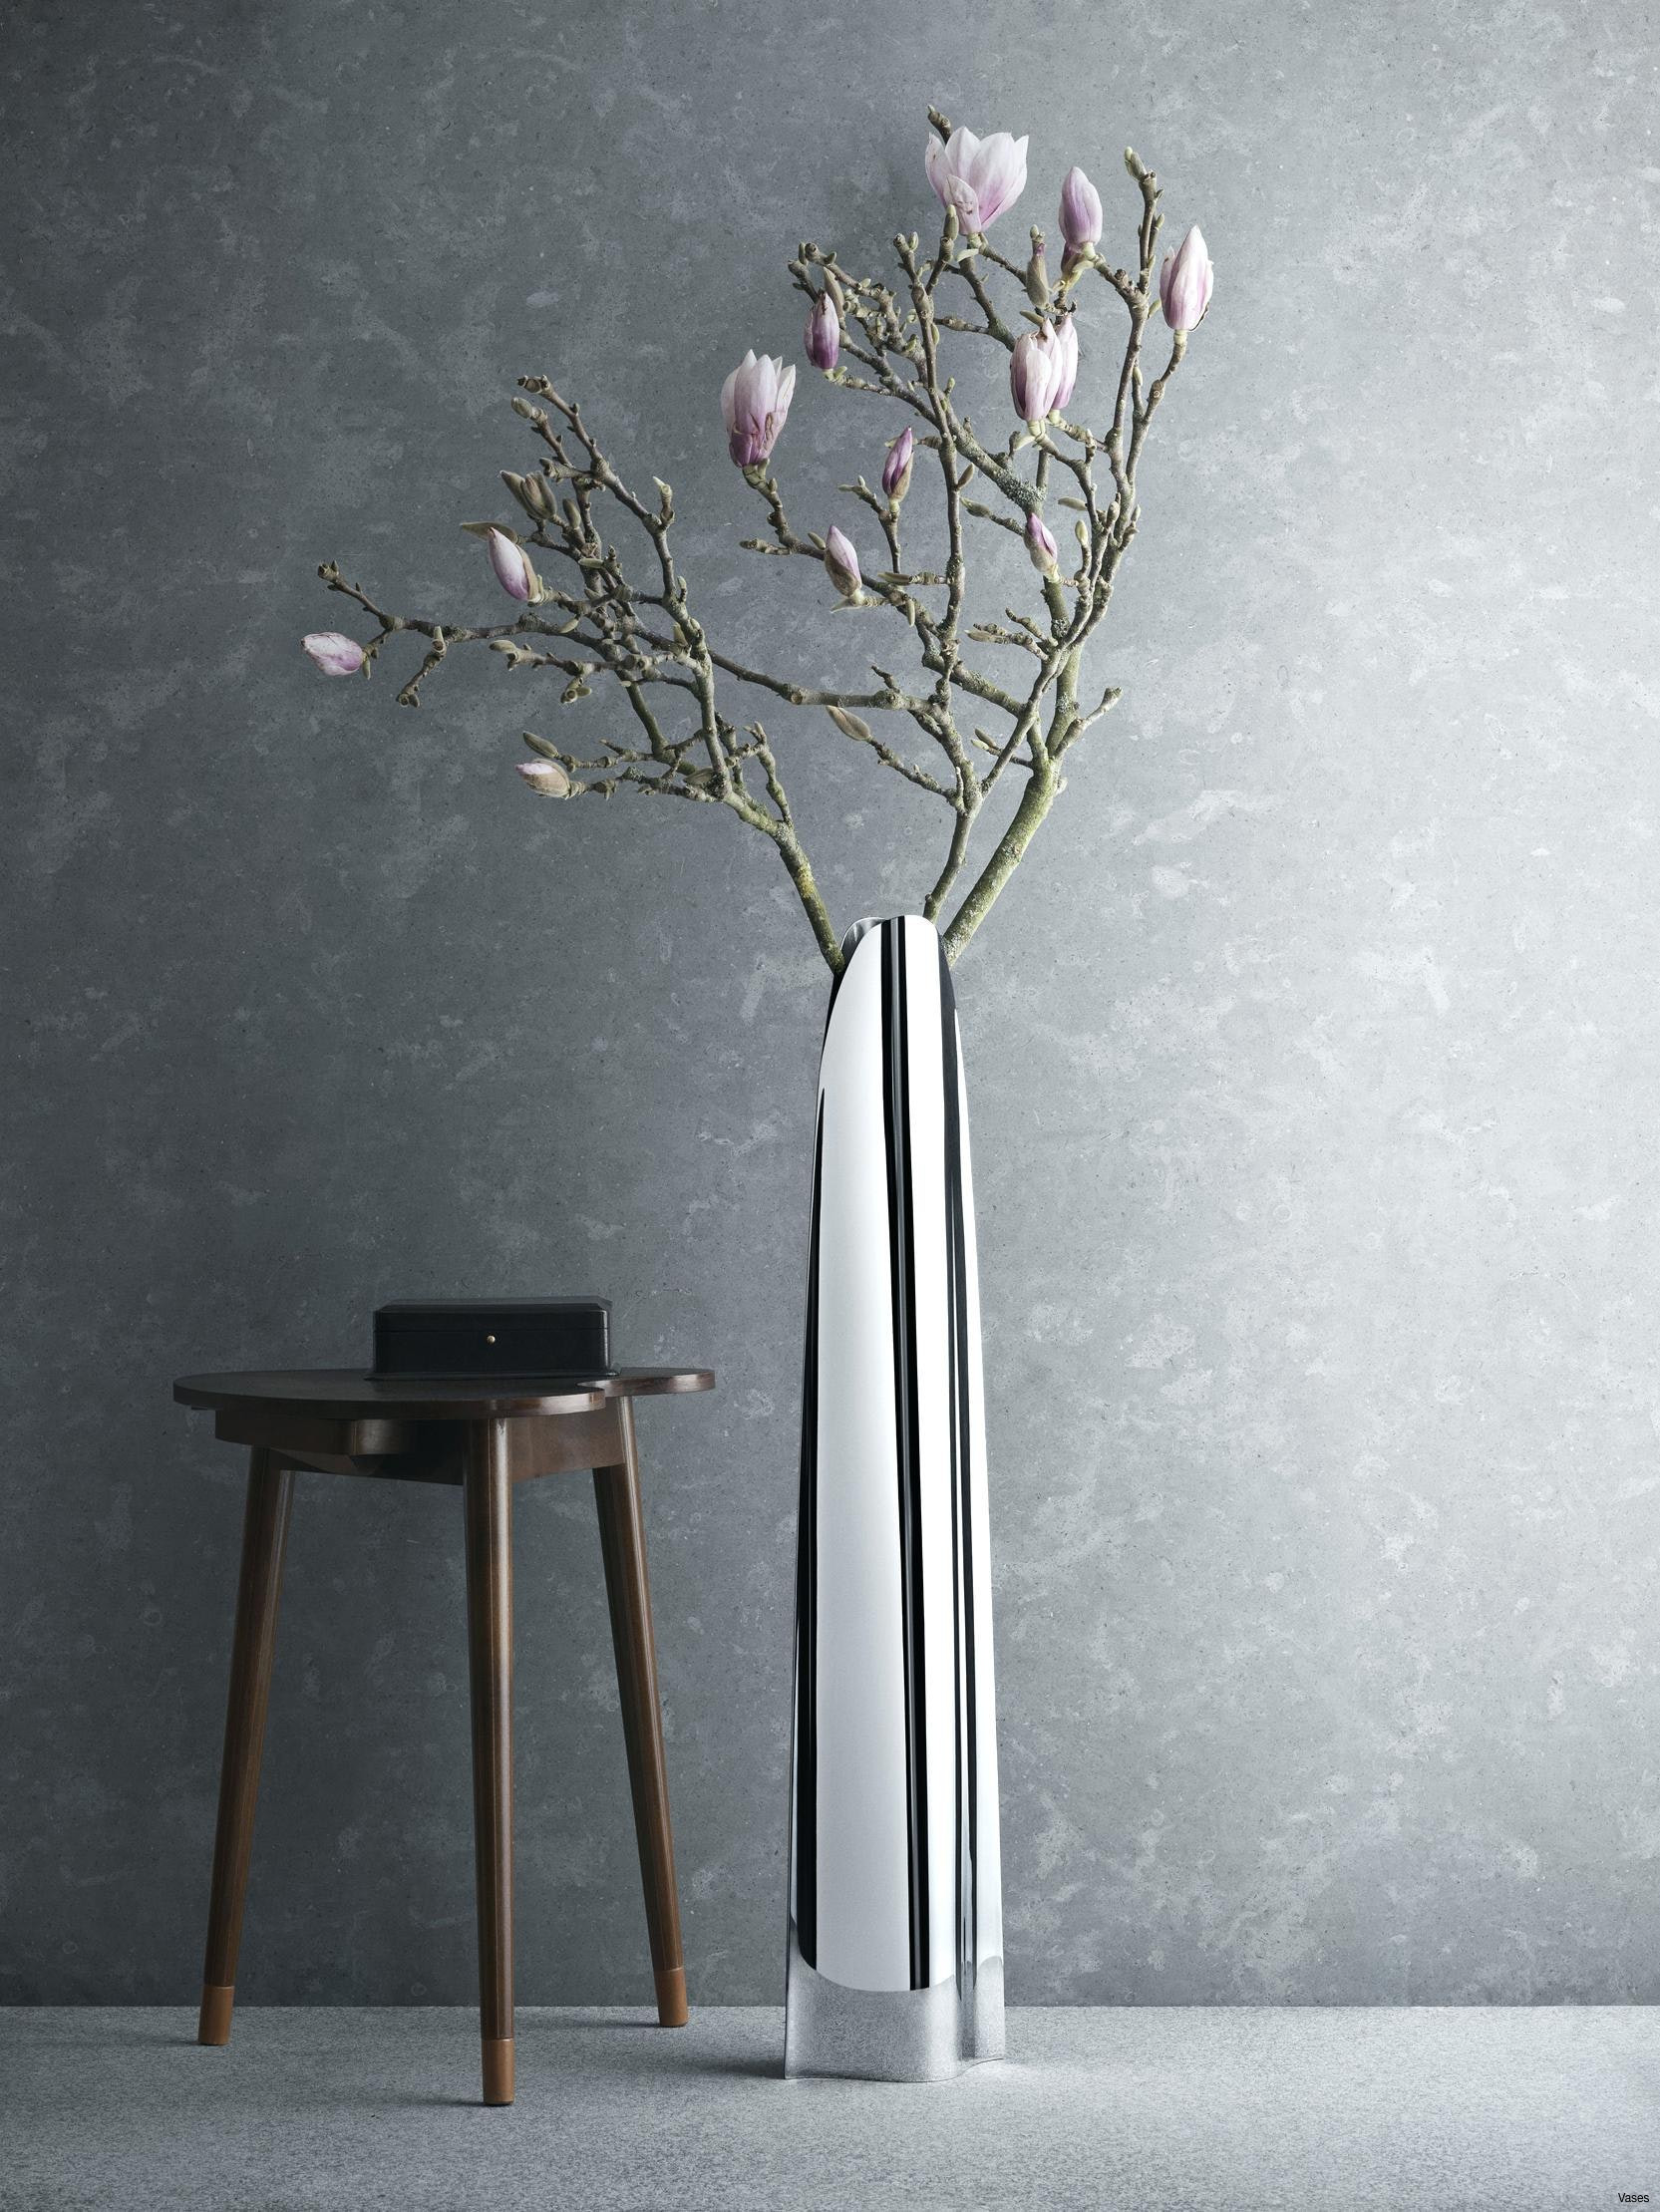 gray ceramic vase of floor vases decor awesome decorating ideas for tall vases awesome h regarding floor vases decor awesome decorating ideas for tall vases awesome h vases giant floor vase i